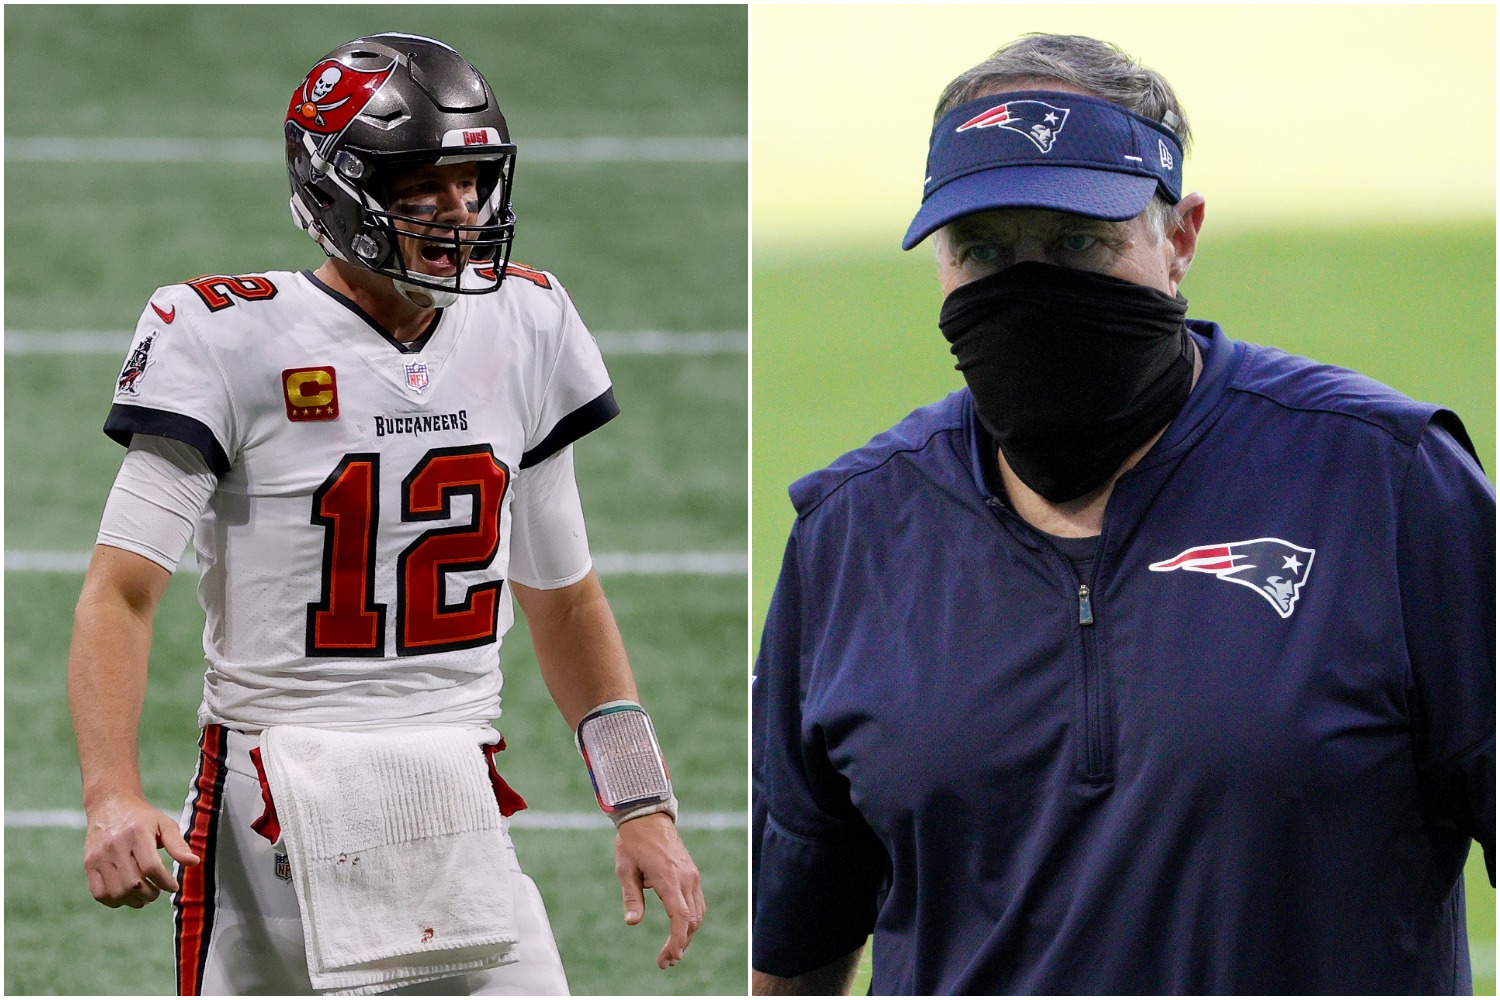 Tom Brady made Bill Belichick's worst nightmare come true by leading the Buccaneers to an epic comeback that proves he's far from finished.